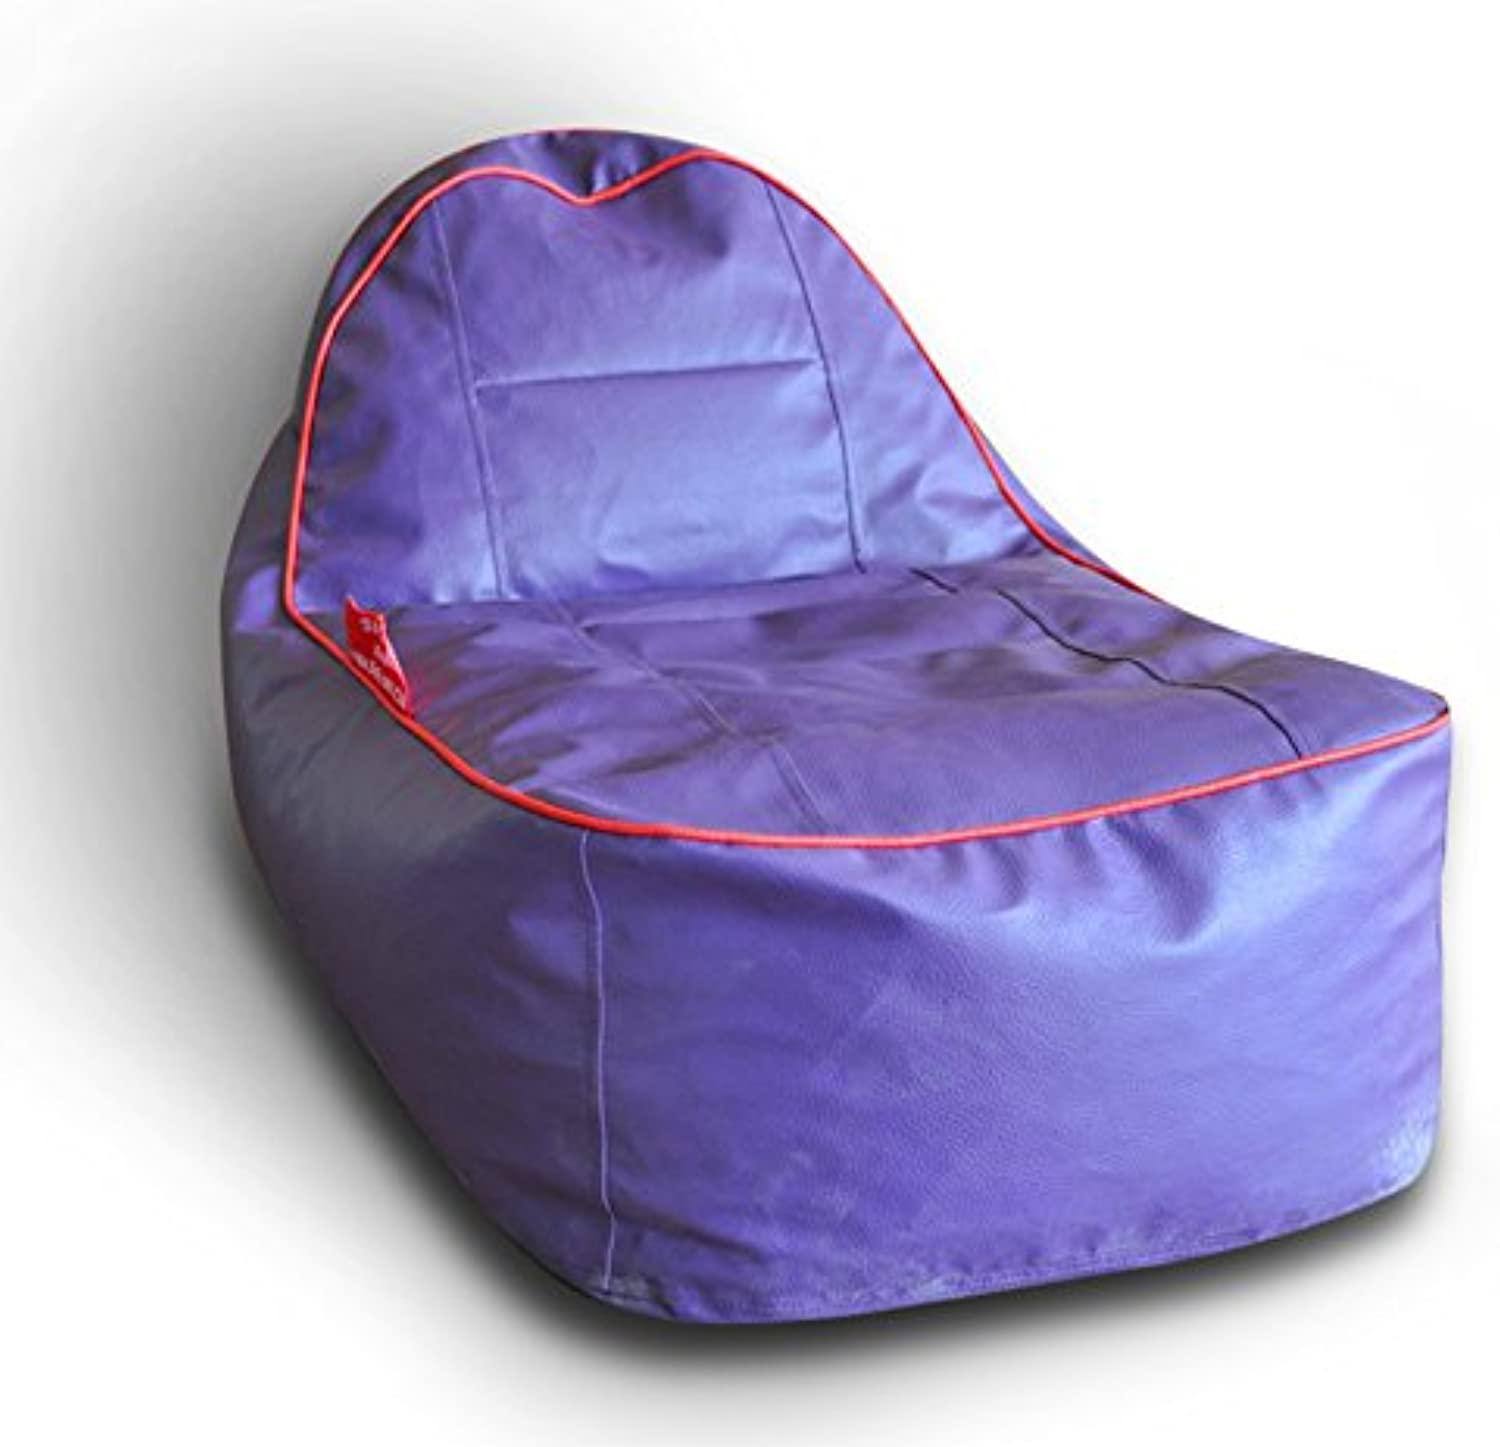 Style Homez Video Rocker for Kids Purple   Red Piping Cover Only